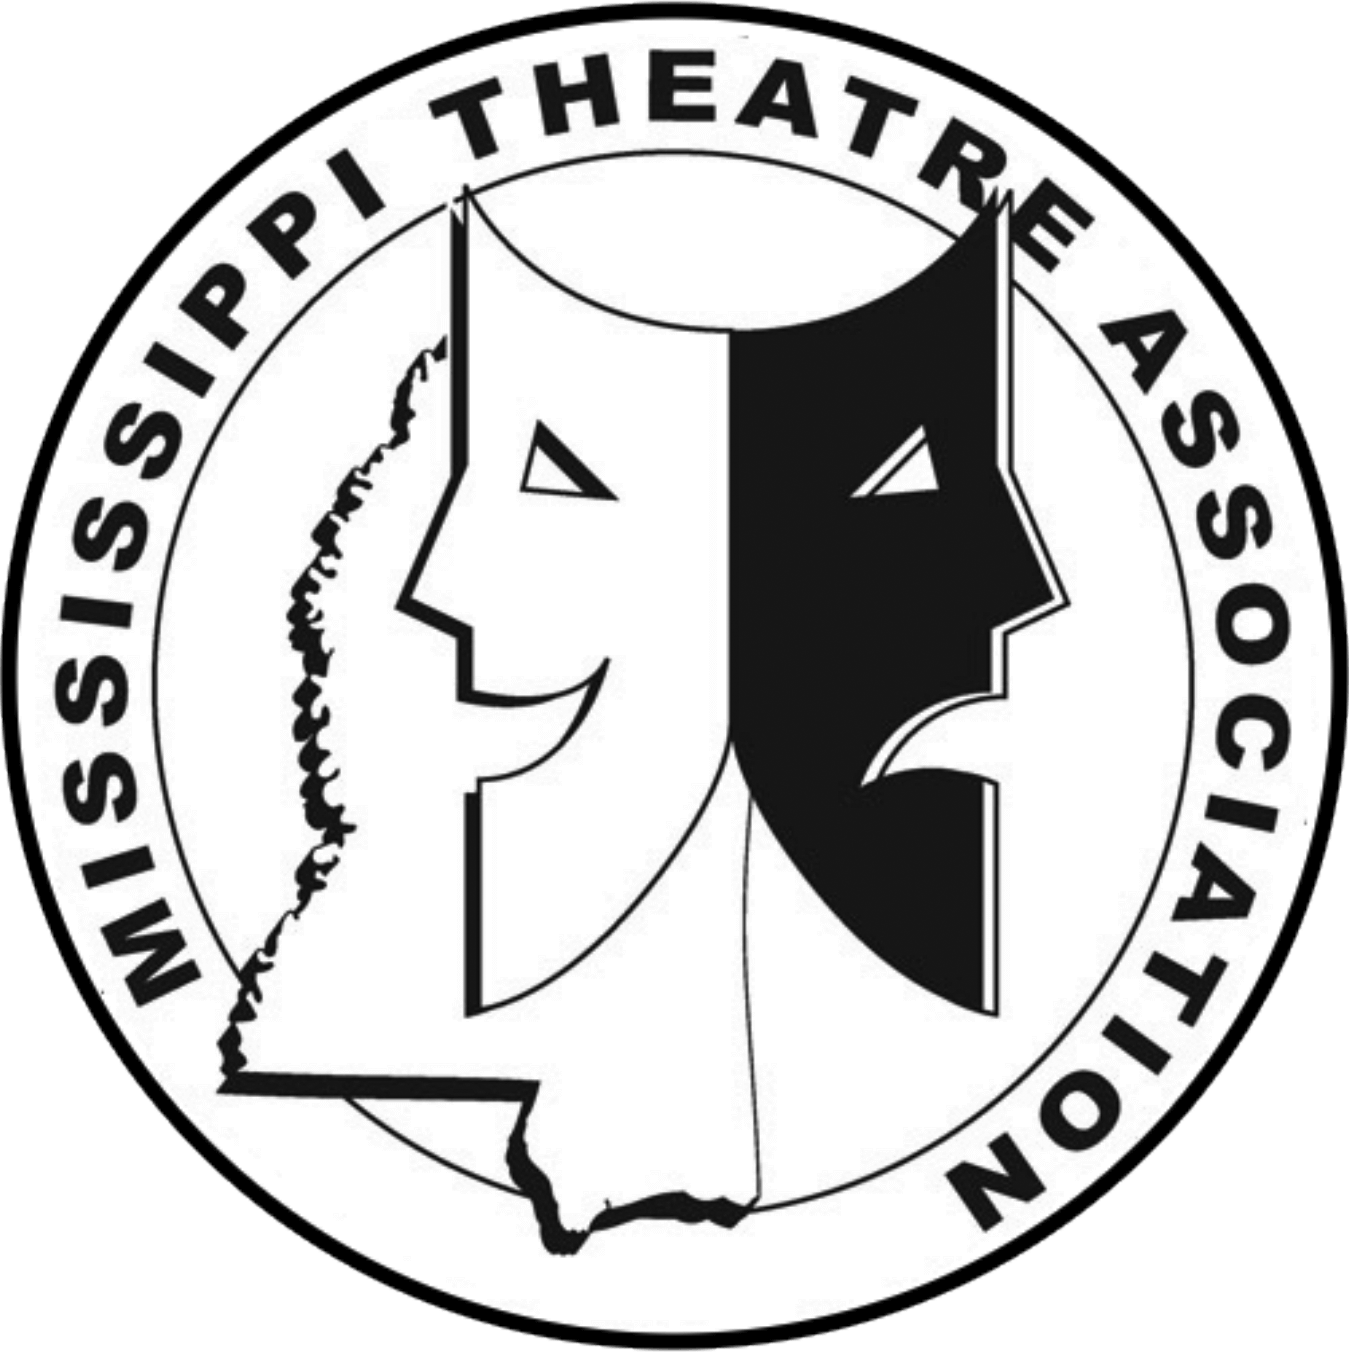 Festival opens april mississippi. Poetry clipart playwriting